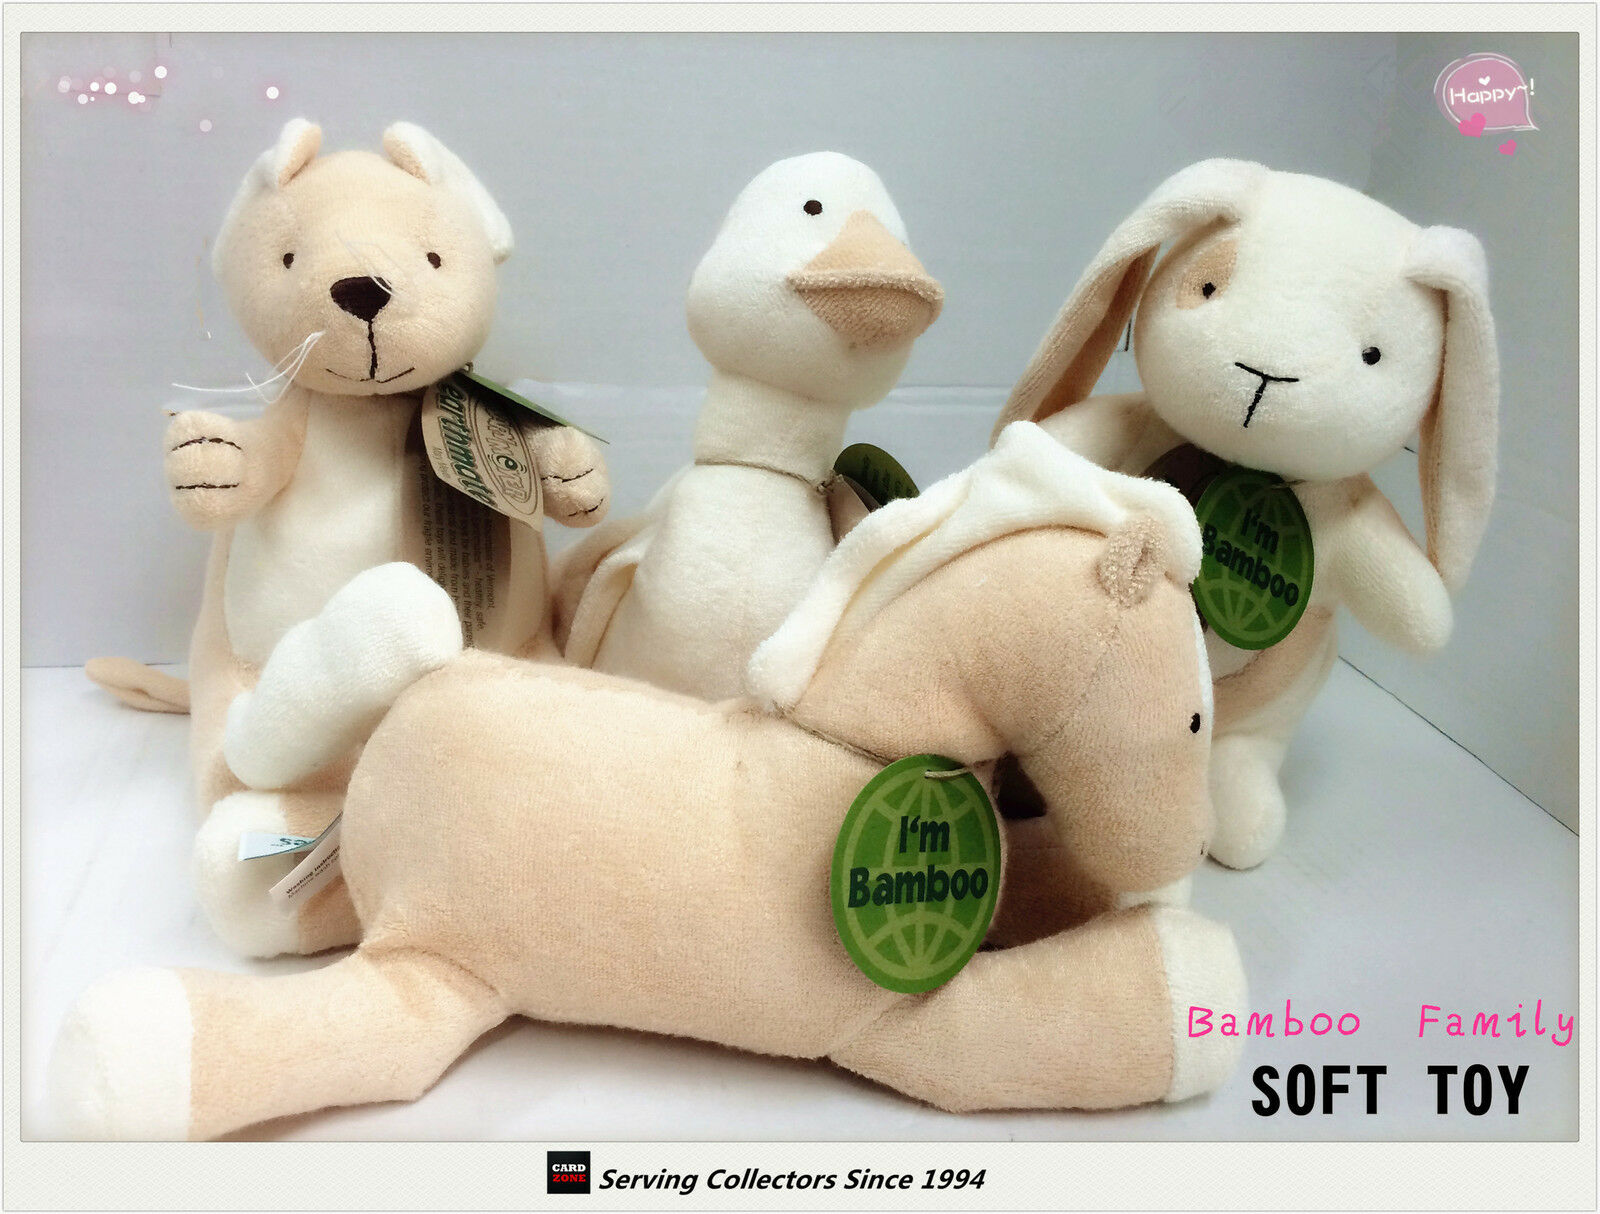 24 SETS OF Bamboo Plush Soft Toys 8 -9  FAMILY of 4--Top quality  (96 in total)